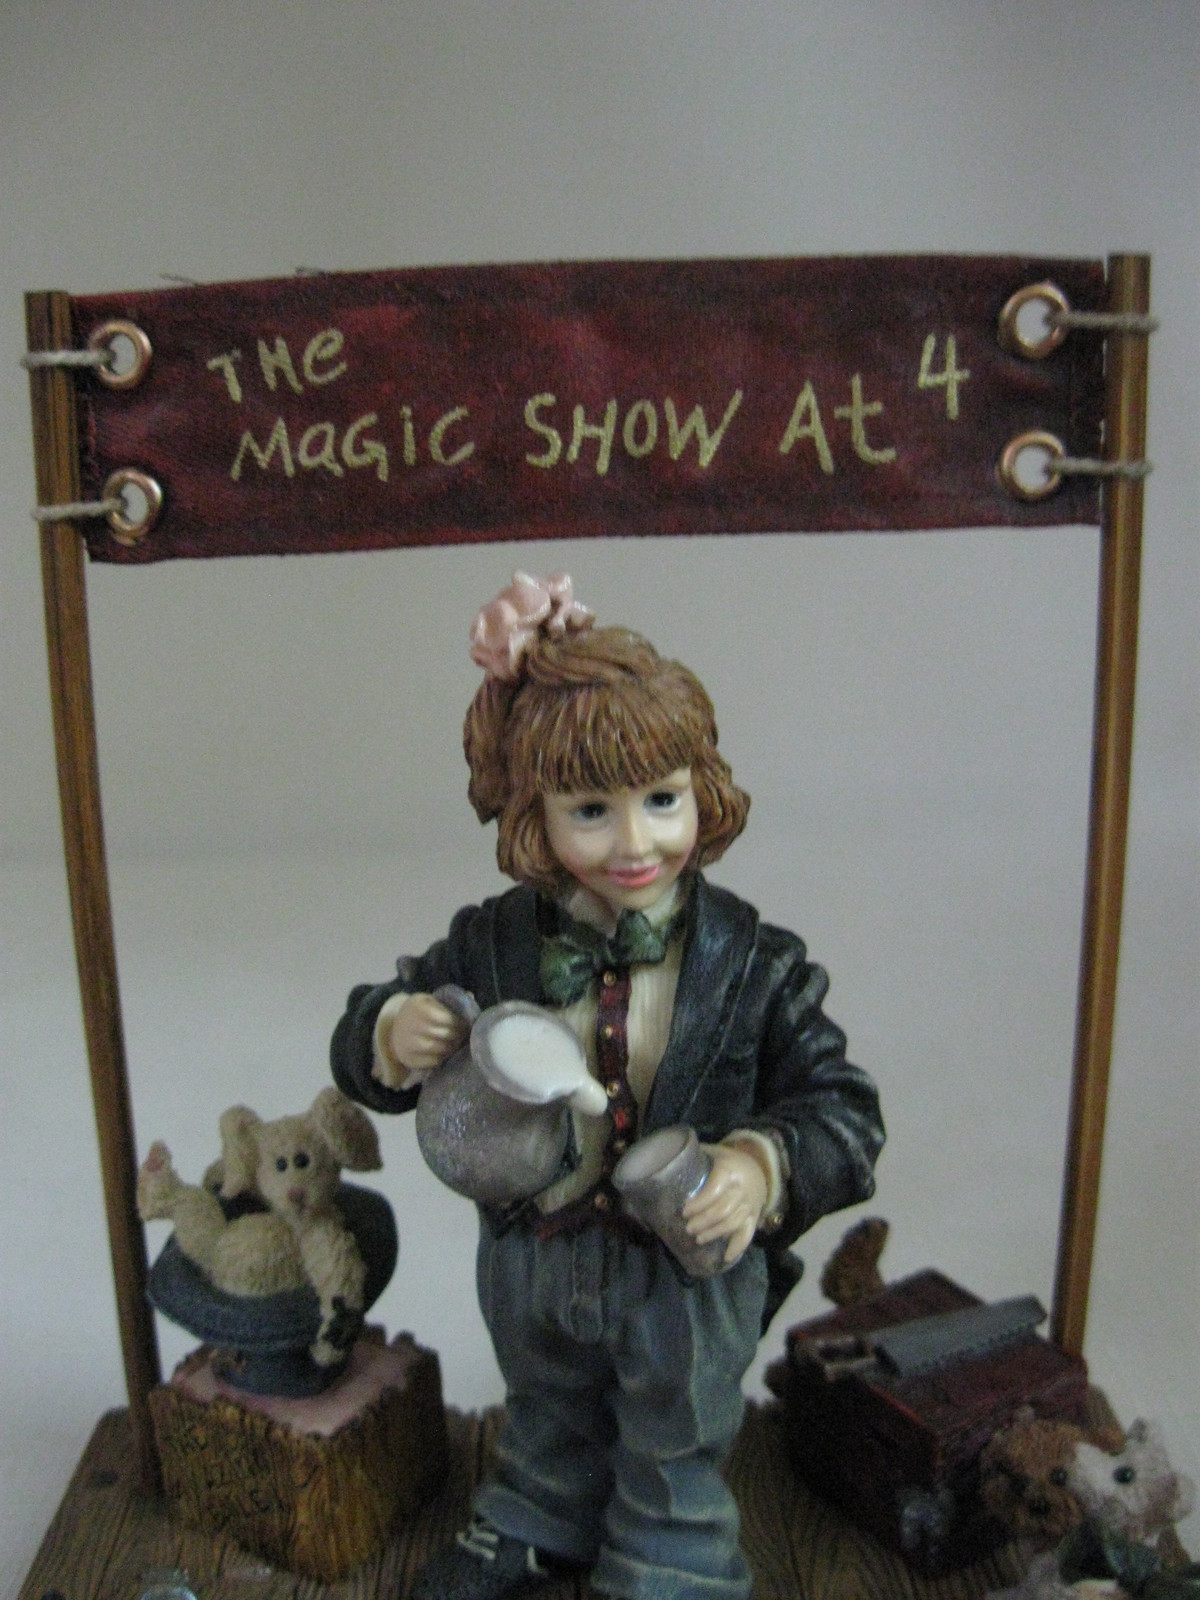 Yesterdays Child Figurine The Magic Show at 4 Limited Edition Boyd's Collection image 2